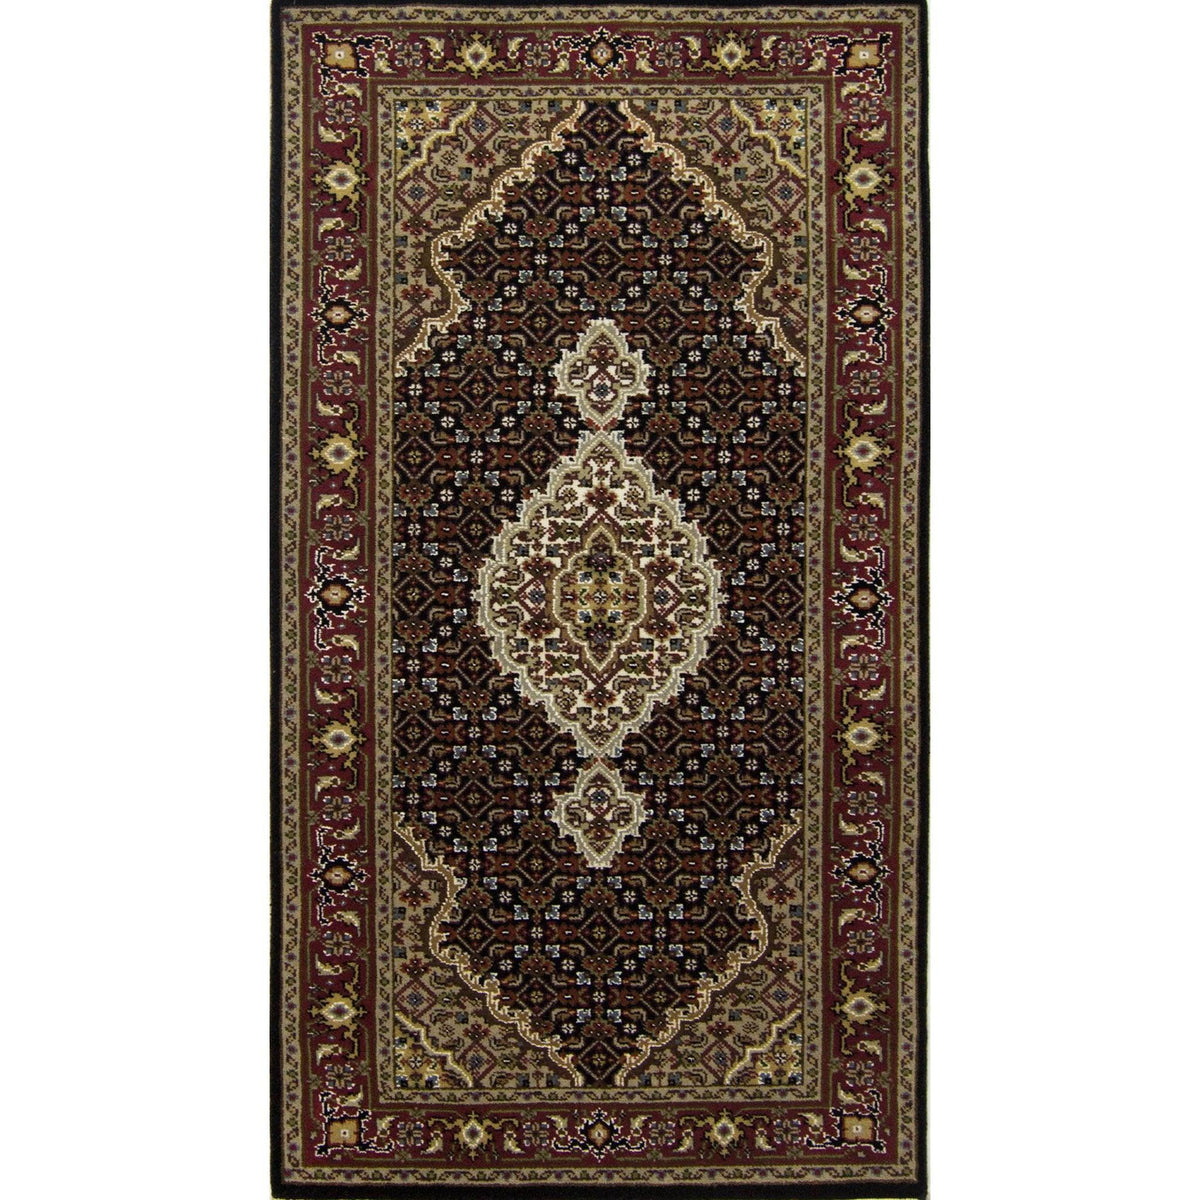 Tabriz - Mahi Persian-Rug | House-of-Haghi | NewMarket | Auckland | NZ | Handmade Persian Rugs | Hand Knotted Persian Rugs